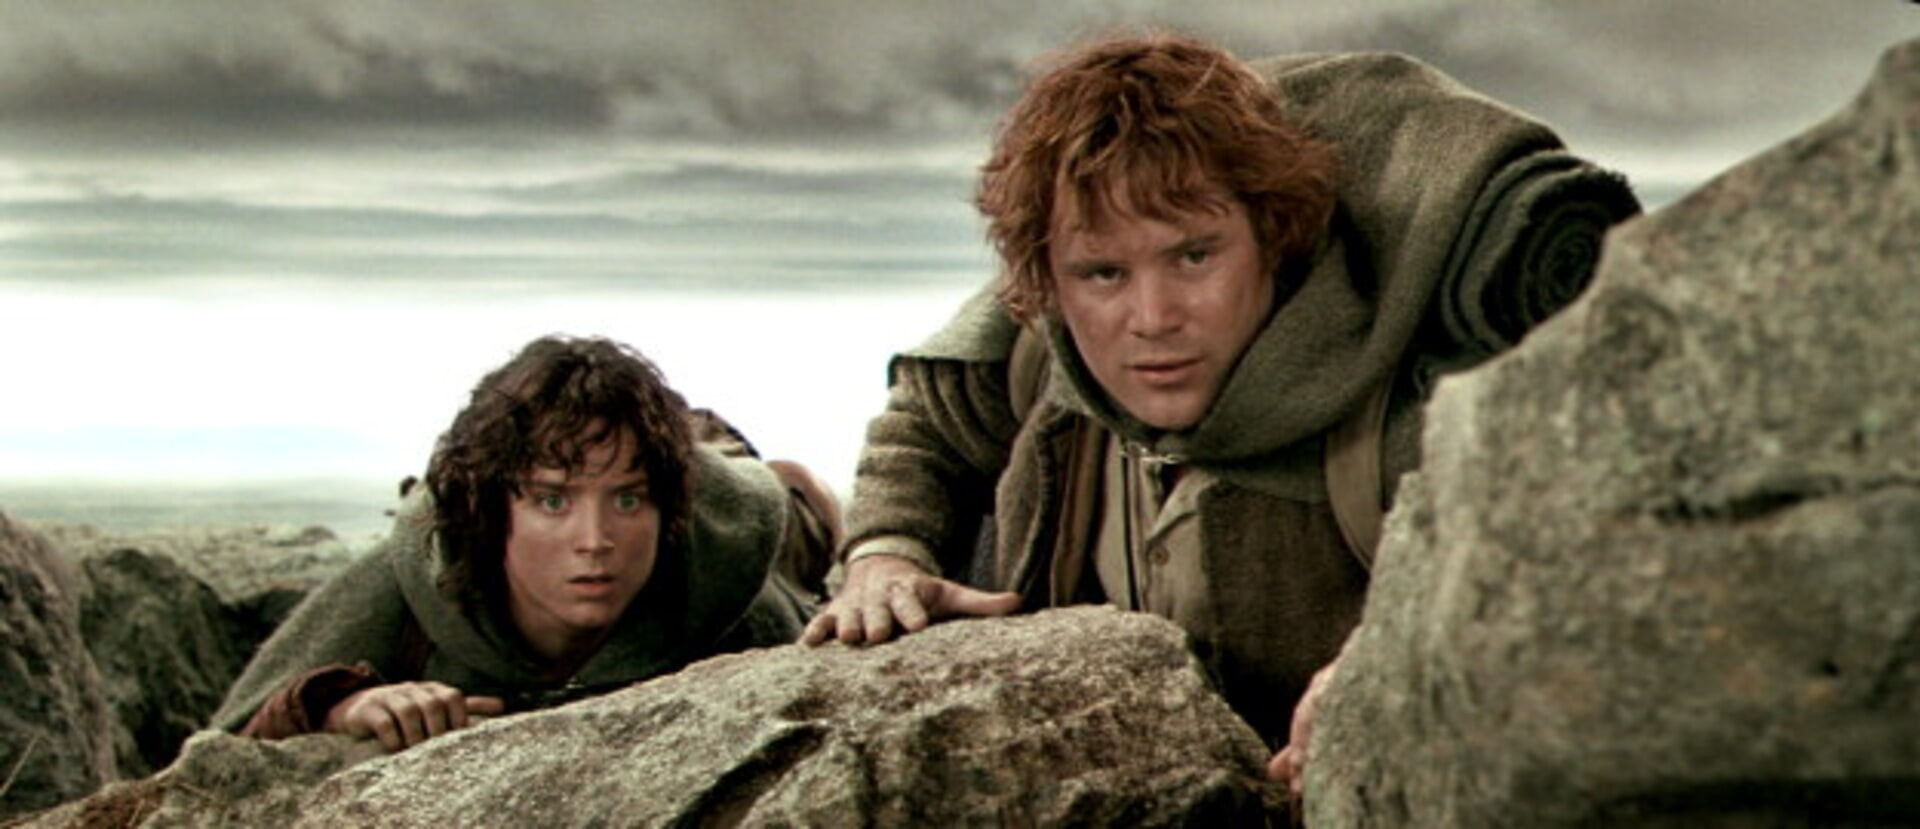 The Lord of the Rings: The Two Towers - Image 83